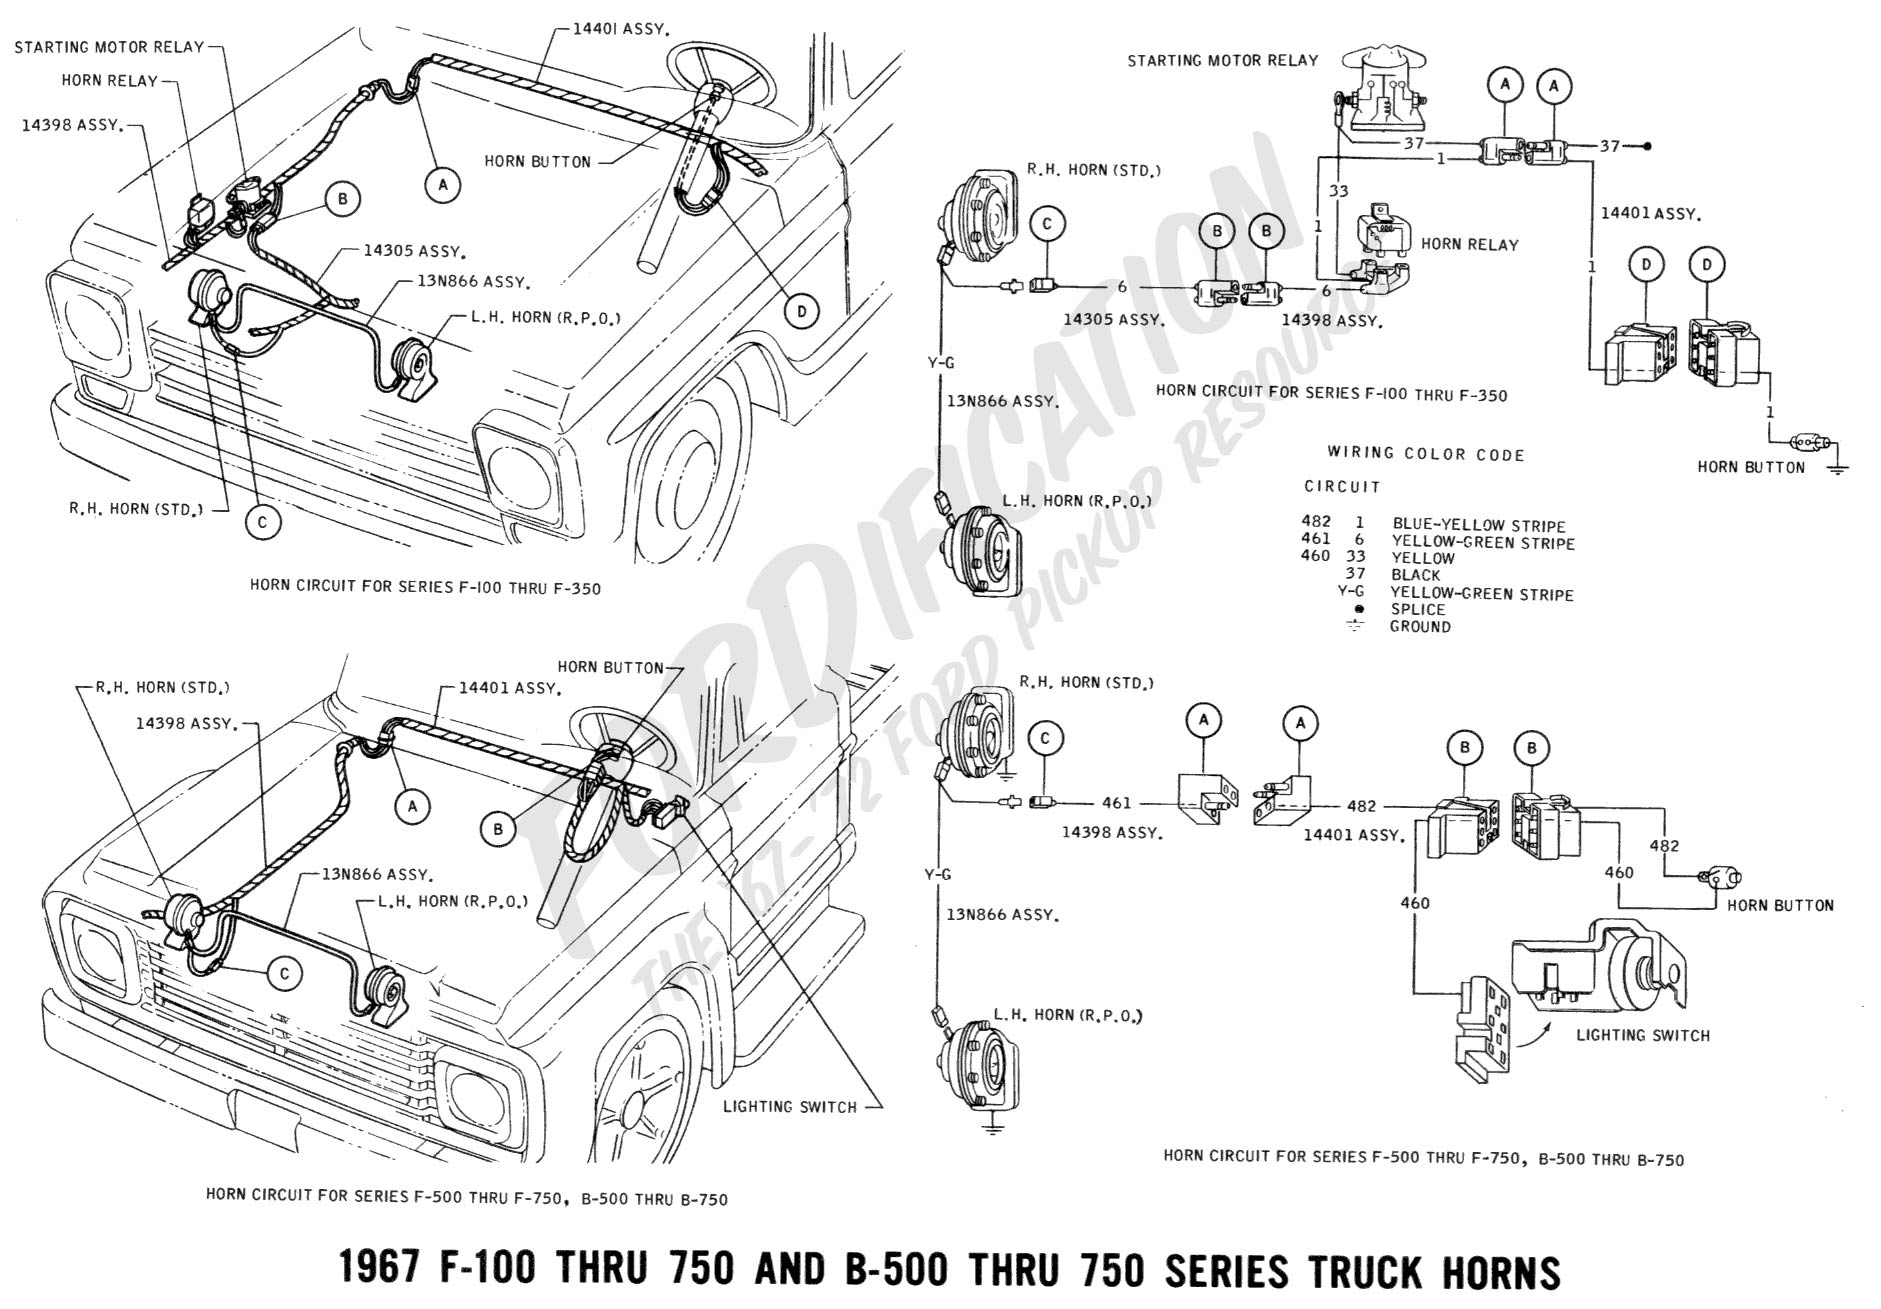 Schematics h moreover Exploded View Results also Jeep Headlight Switch Wiring Diagram 1972 in addition Viewtopic as well Wiring Diagram 69 Corvette 1975. on 79 ford truck steering column wiring diagram